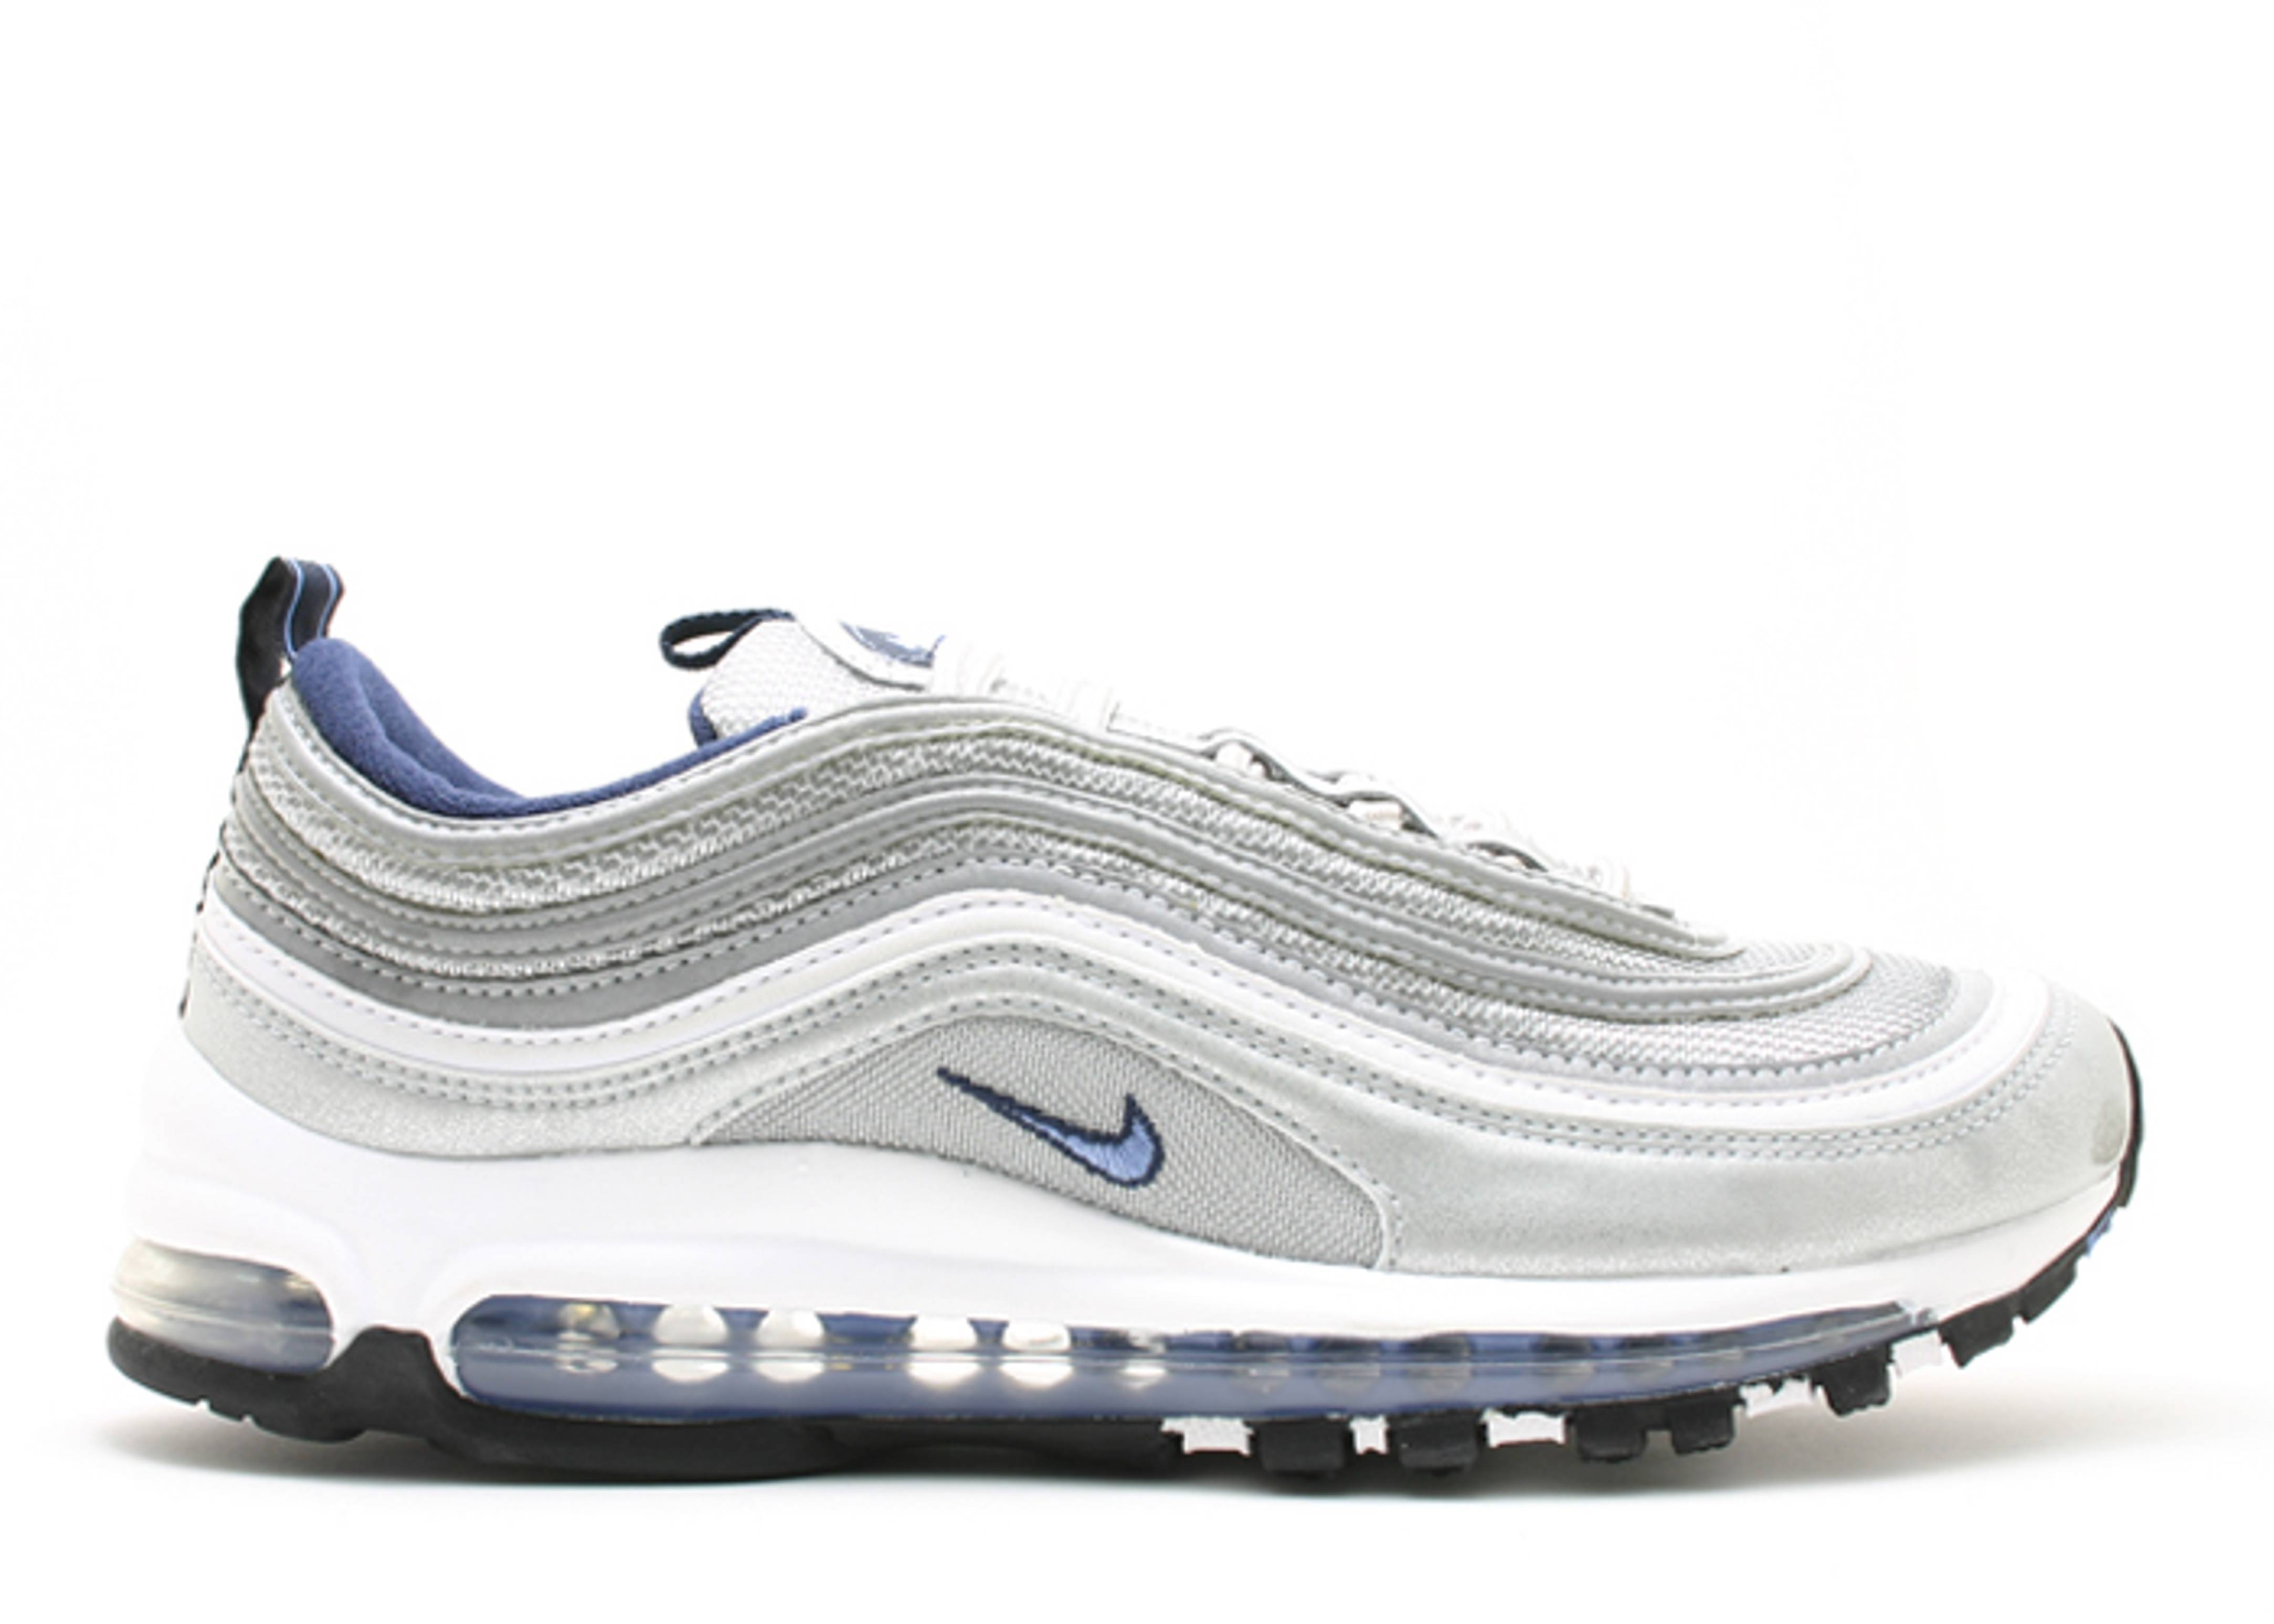 Nike Air Max 97 OG Metallic Silver Polar